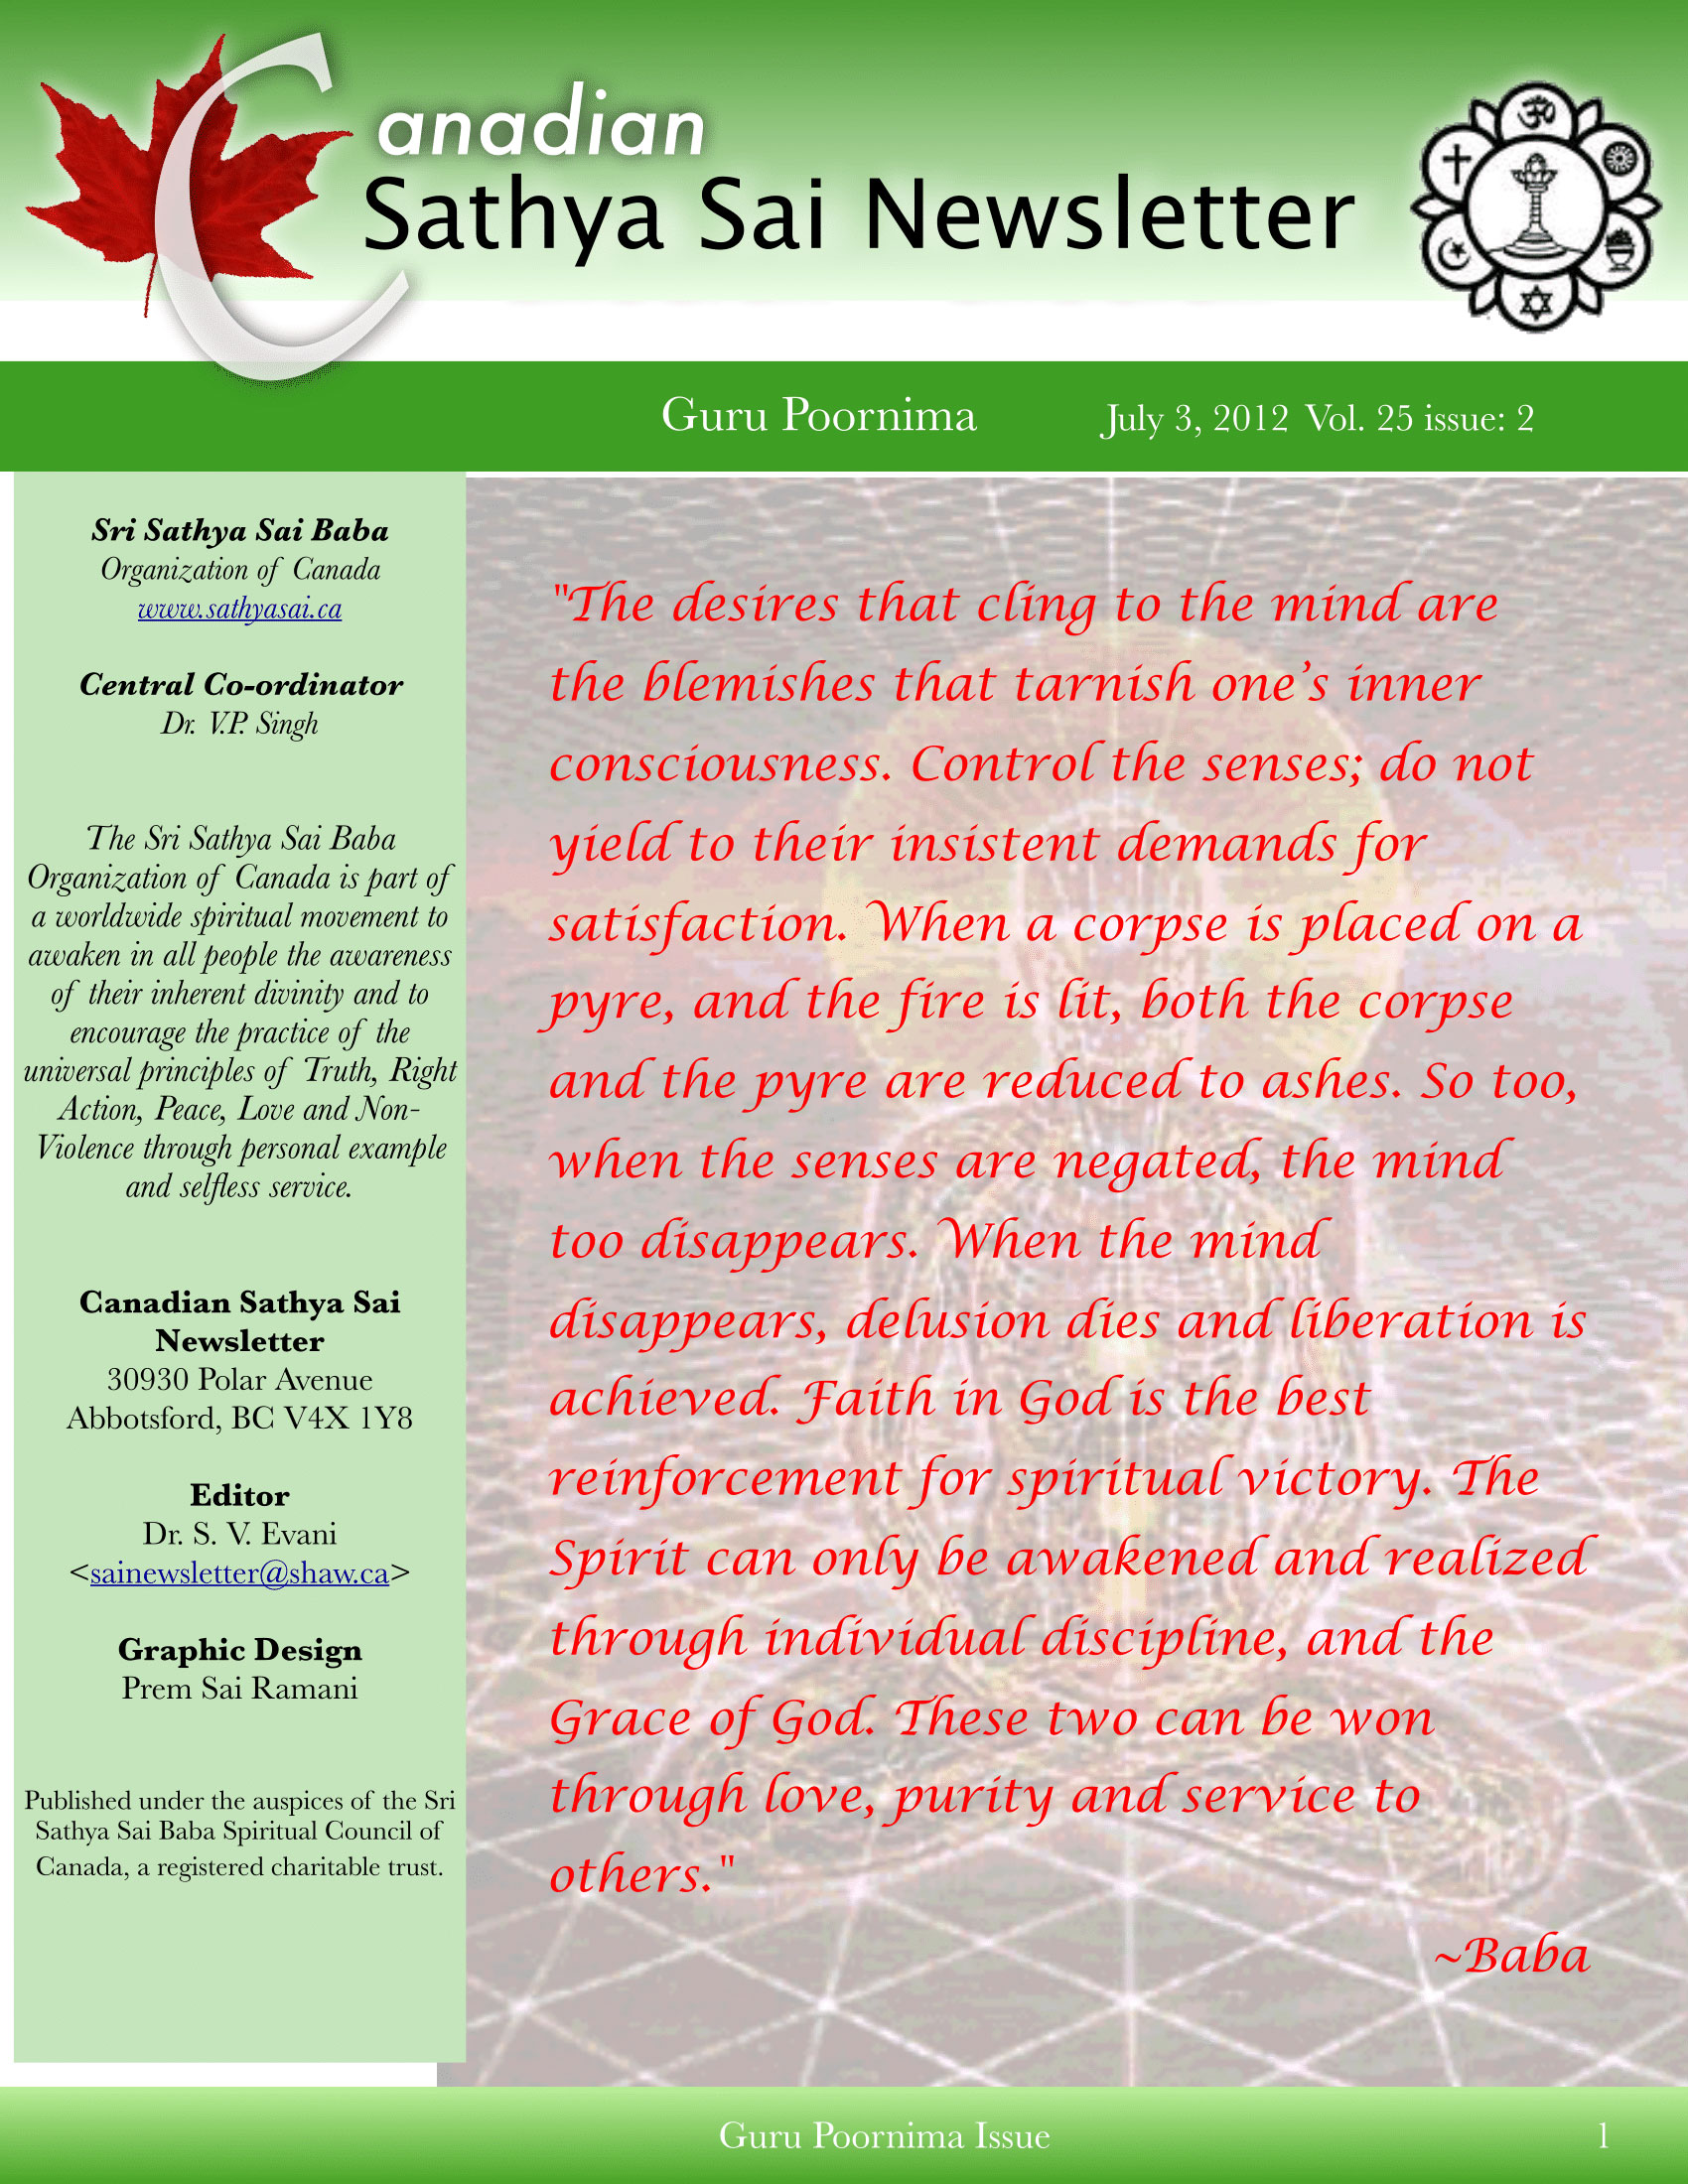 The Canadian Sathya Sai Magazine - Summer 2012